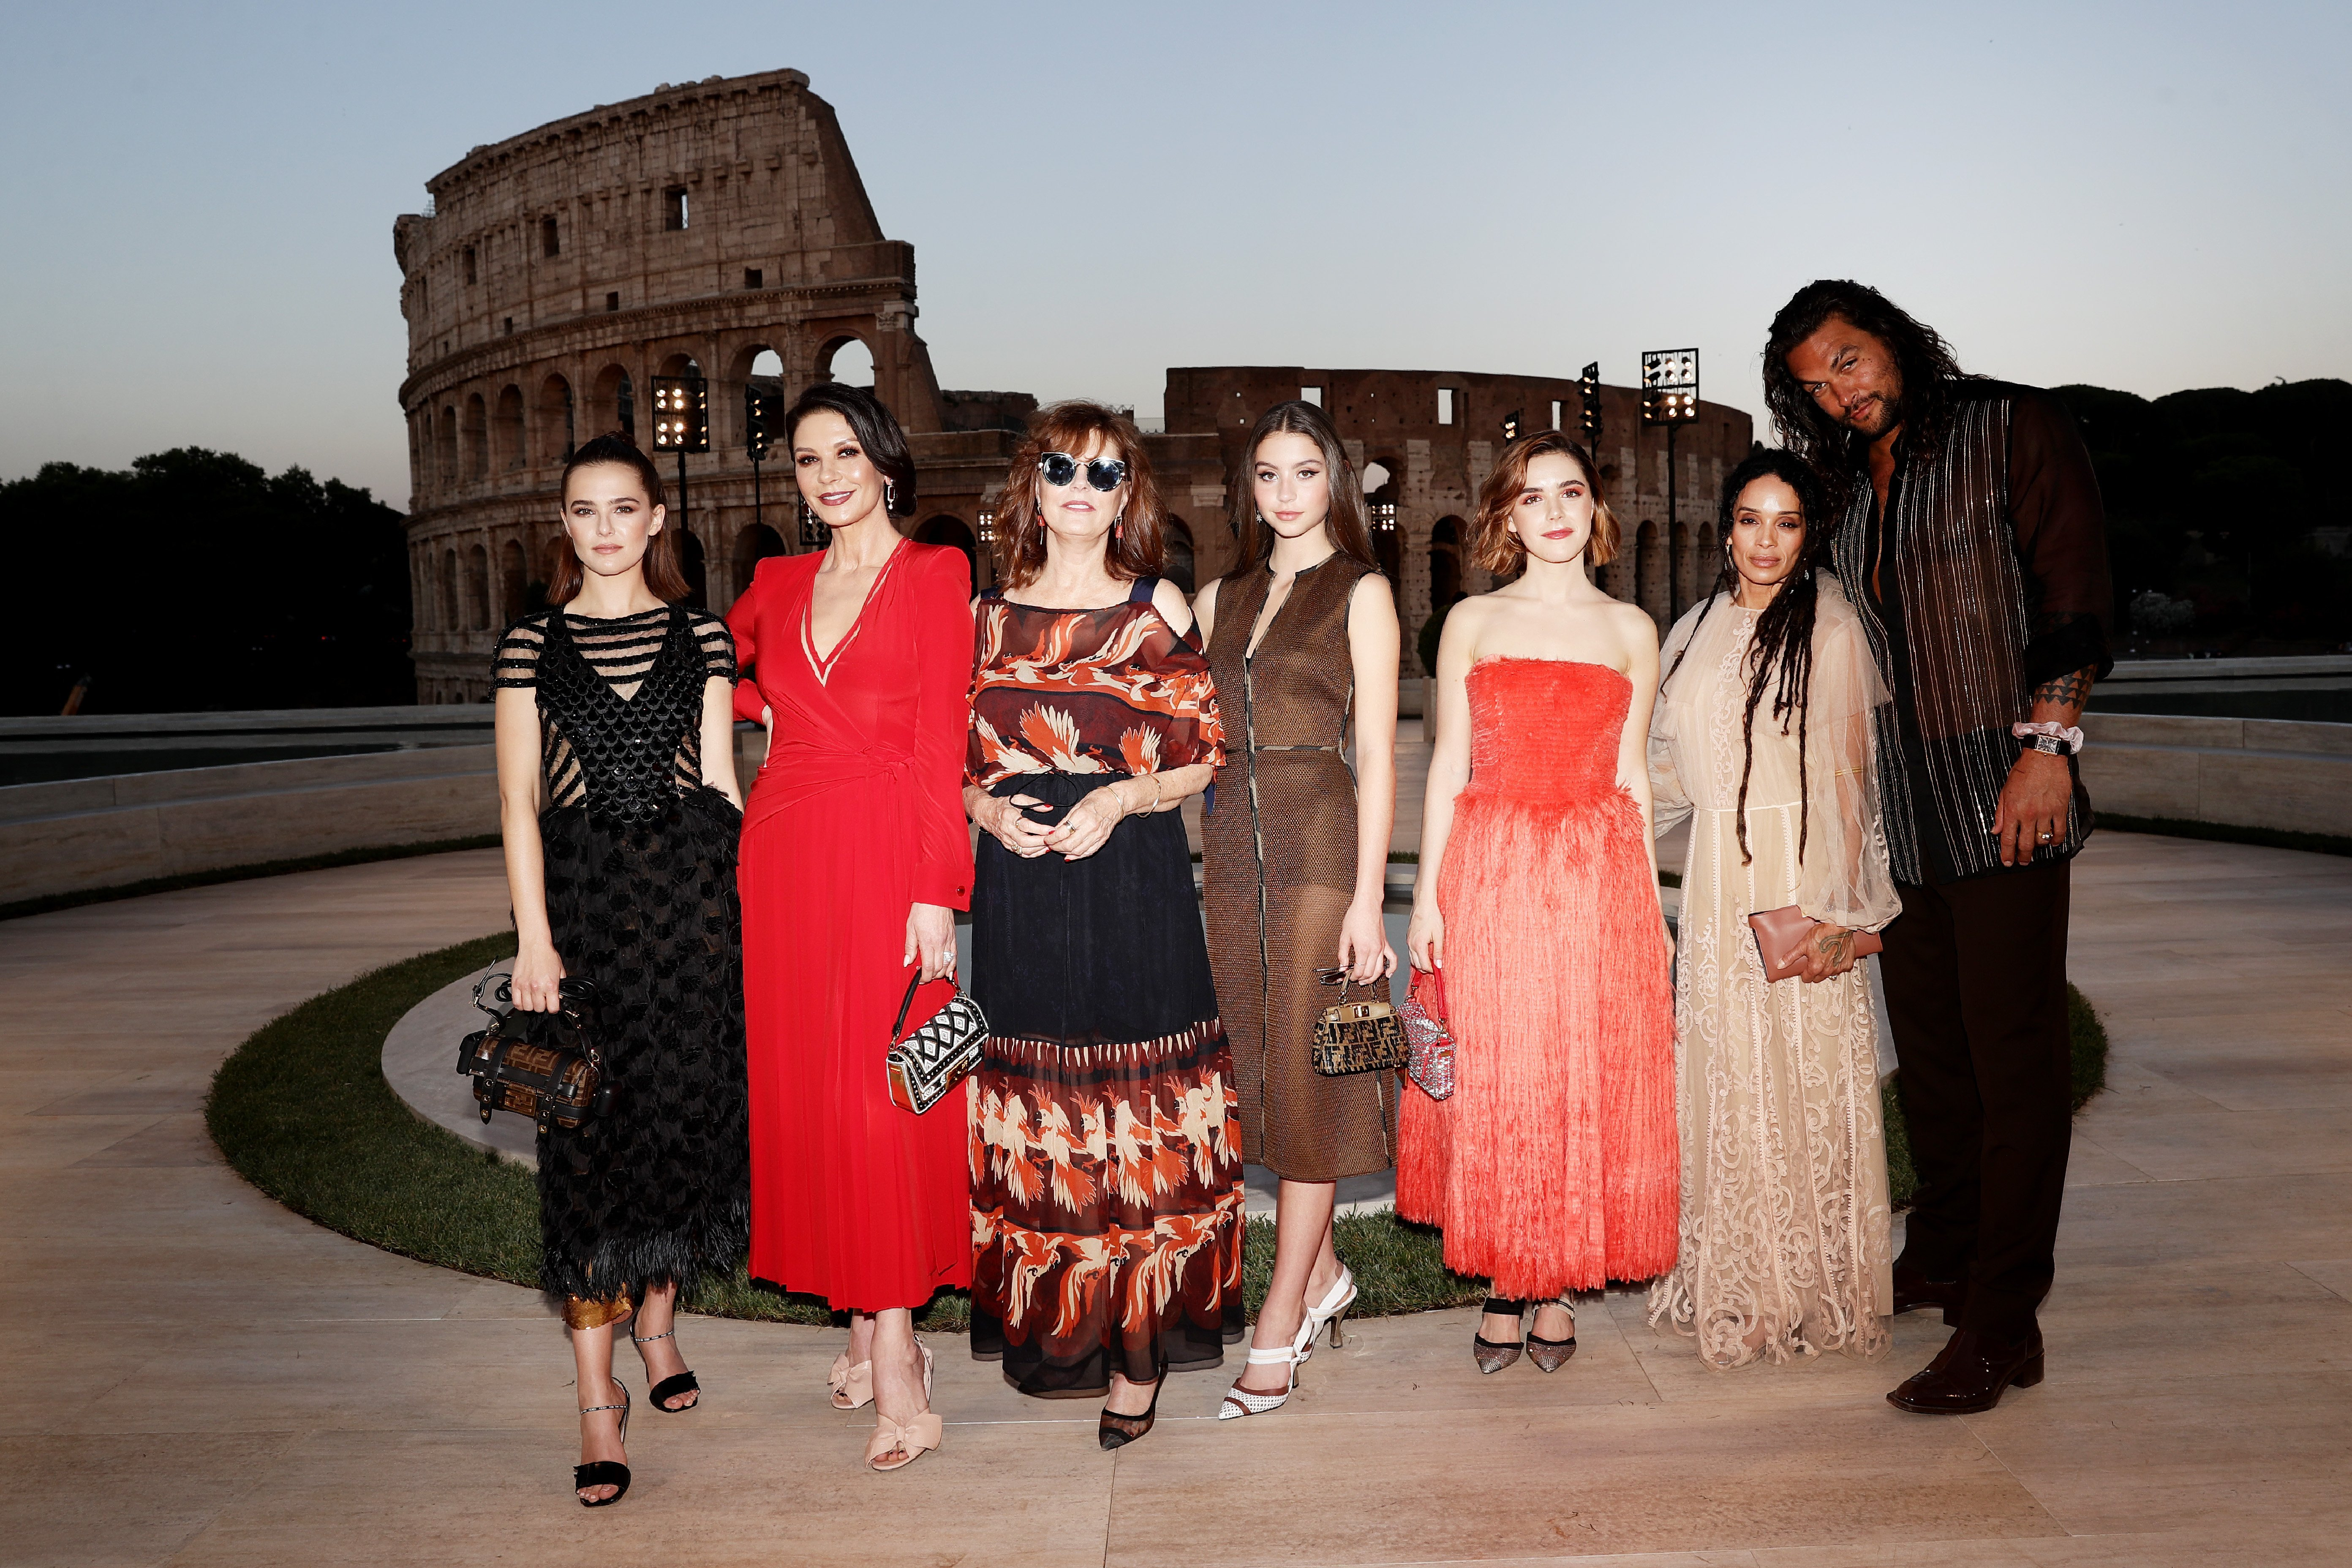 Catherine Zeta-Jones with her daughter Carys, Zoey Deutch, Susan Sarandon, Kiernan Shipka, Lisa Bonet and Jason Momoa at the Cocktail at Fendi Couture Fall Winter 2019/2020 in Rome, Italy   Photo: Getty Images